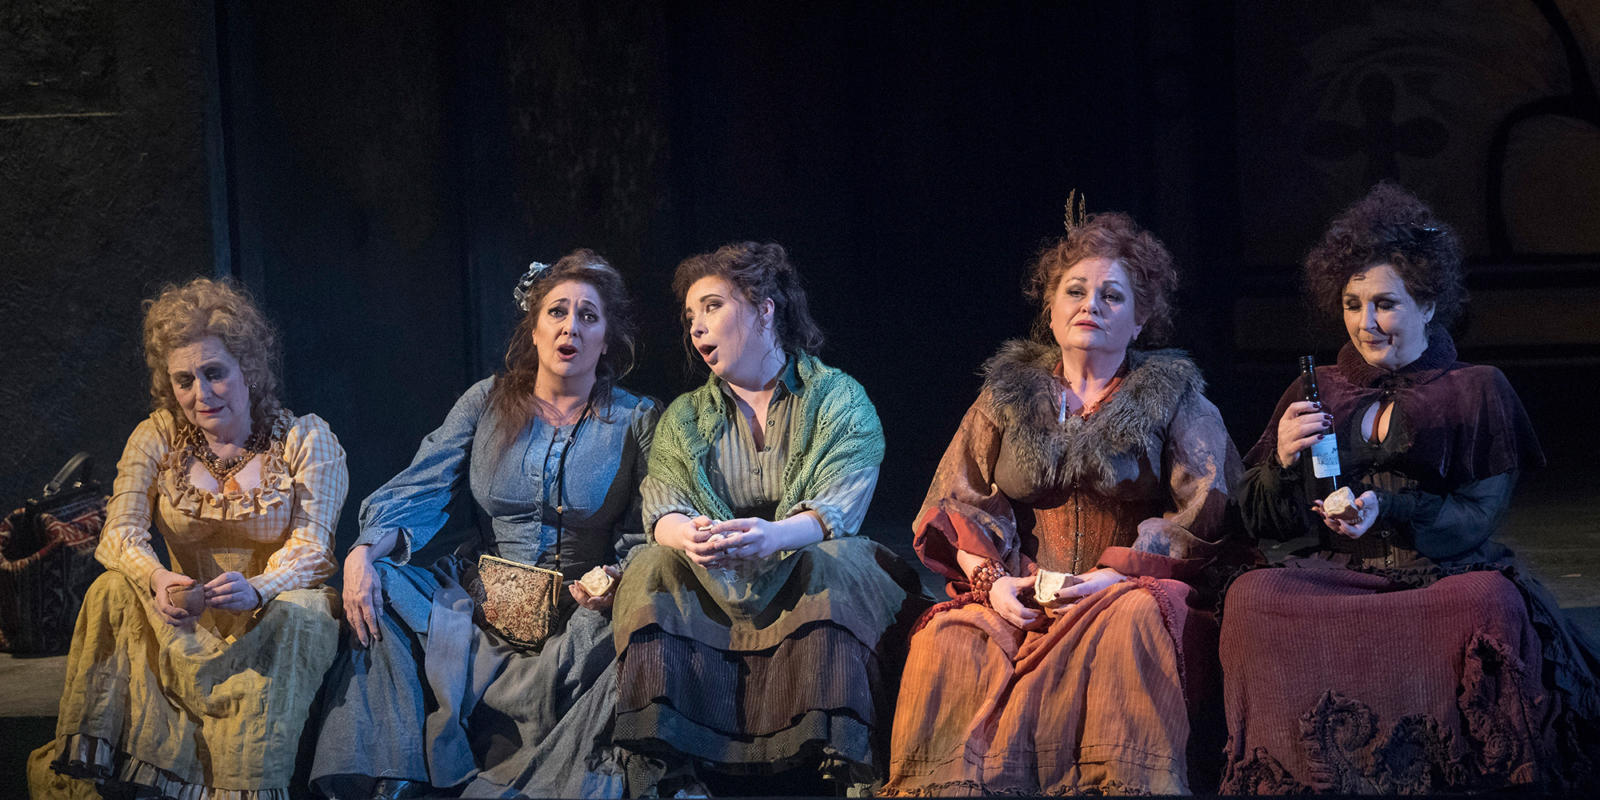 The five women of Whitechapel each holding a piece of pork pie and one holding a bottle of wine